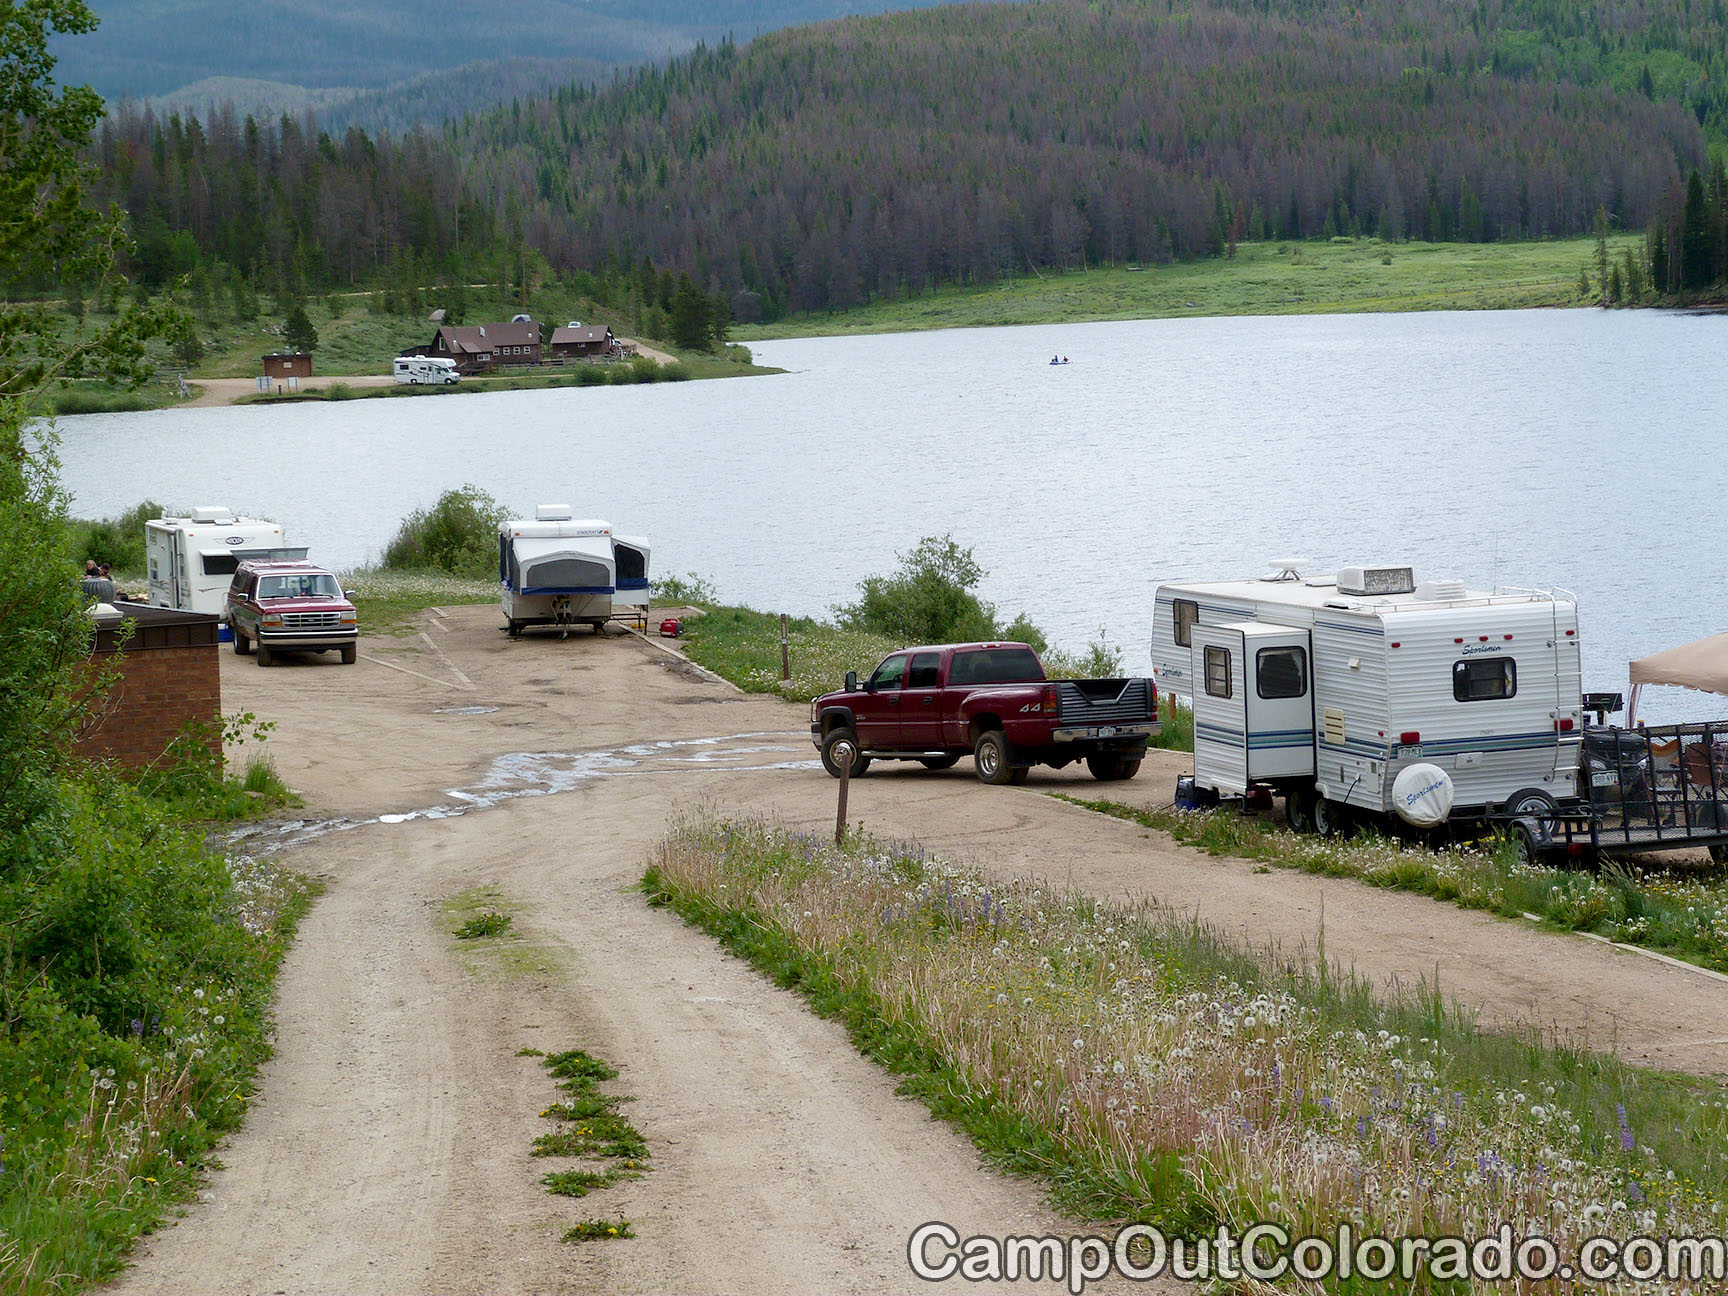 Campoutcolorado-north-michigan-reservoir-campground-lake-side-camping